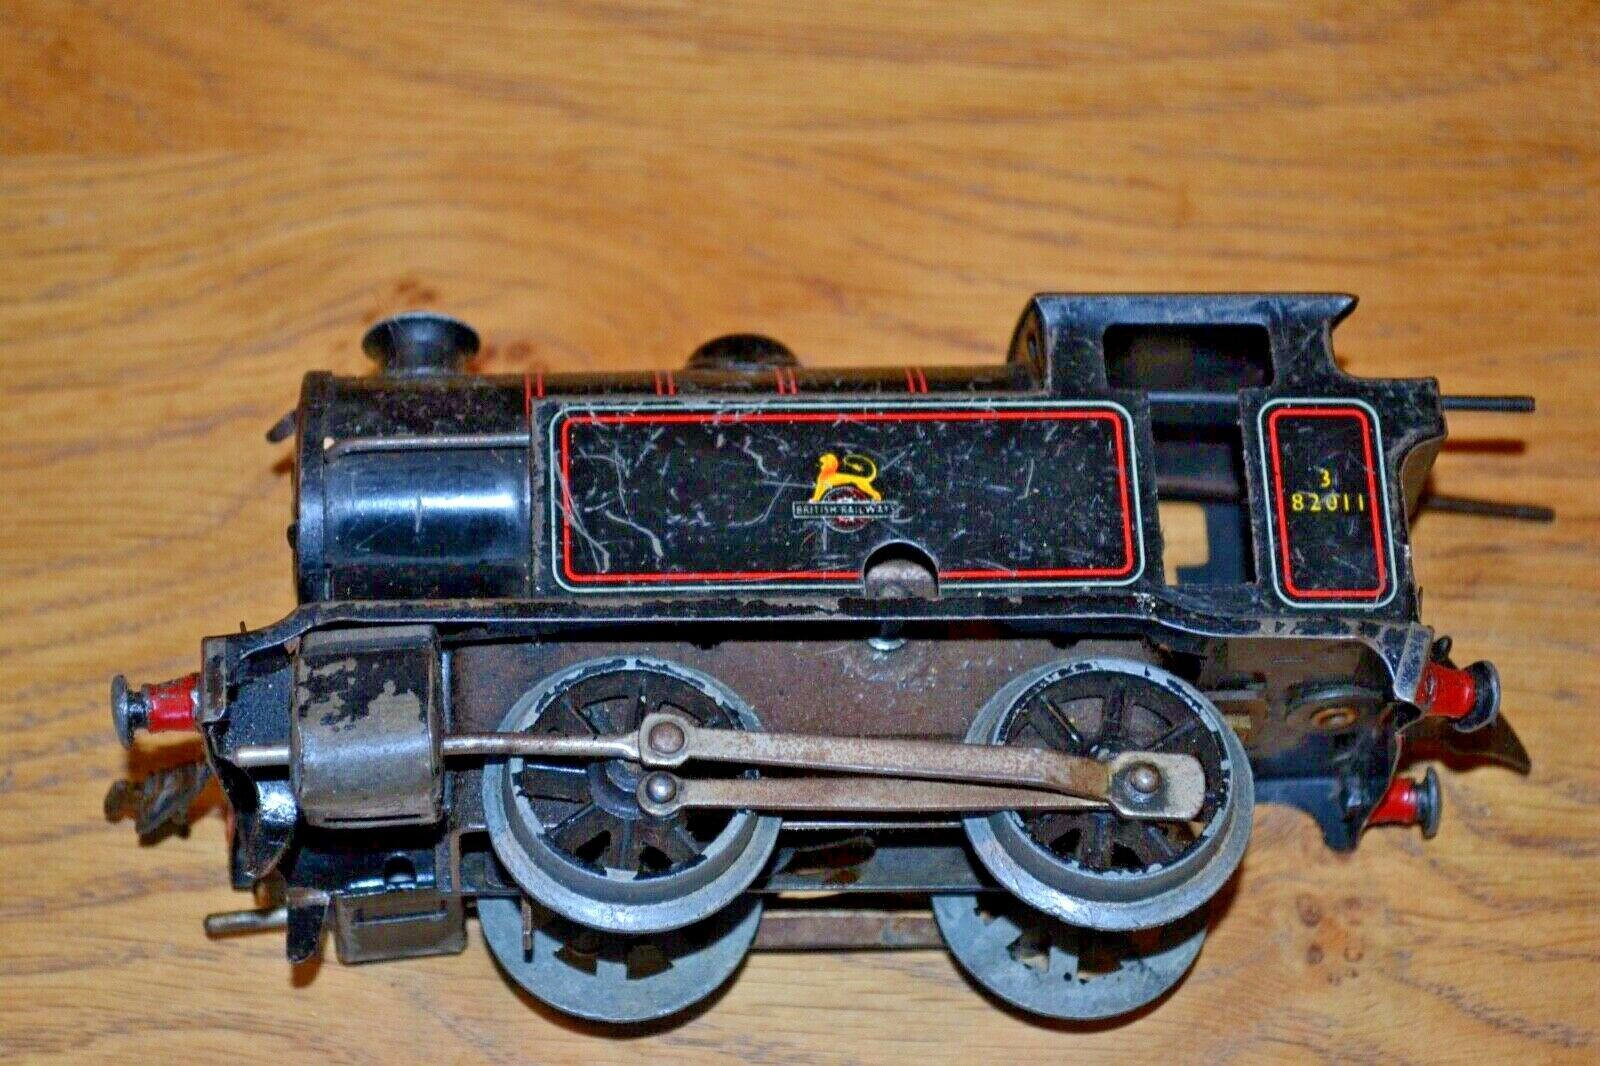 Hornby O Gauge British Railways 82011 0-4-0 Locomotive Clockwork